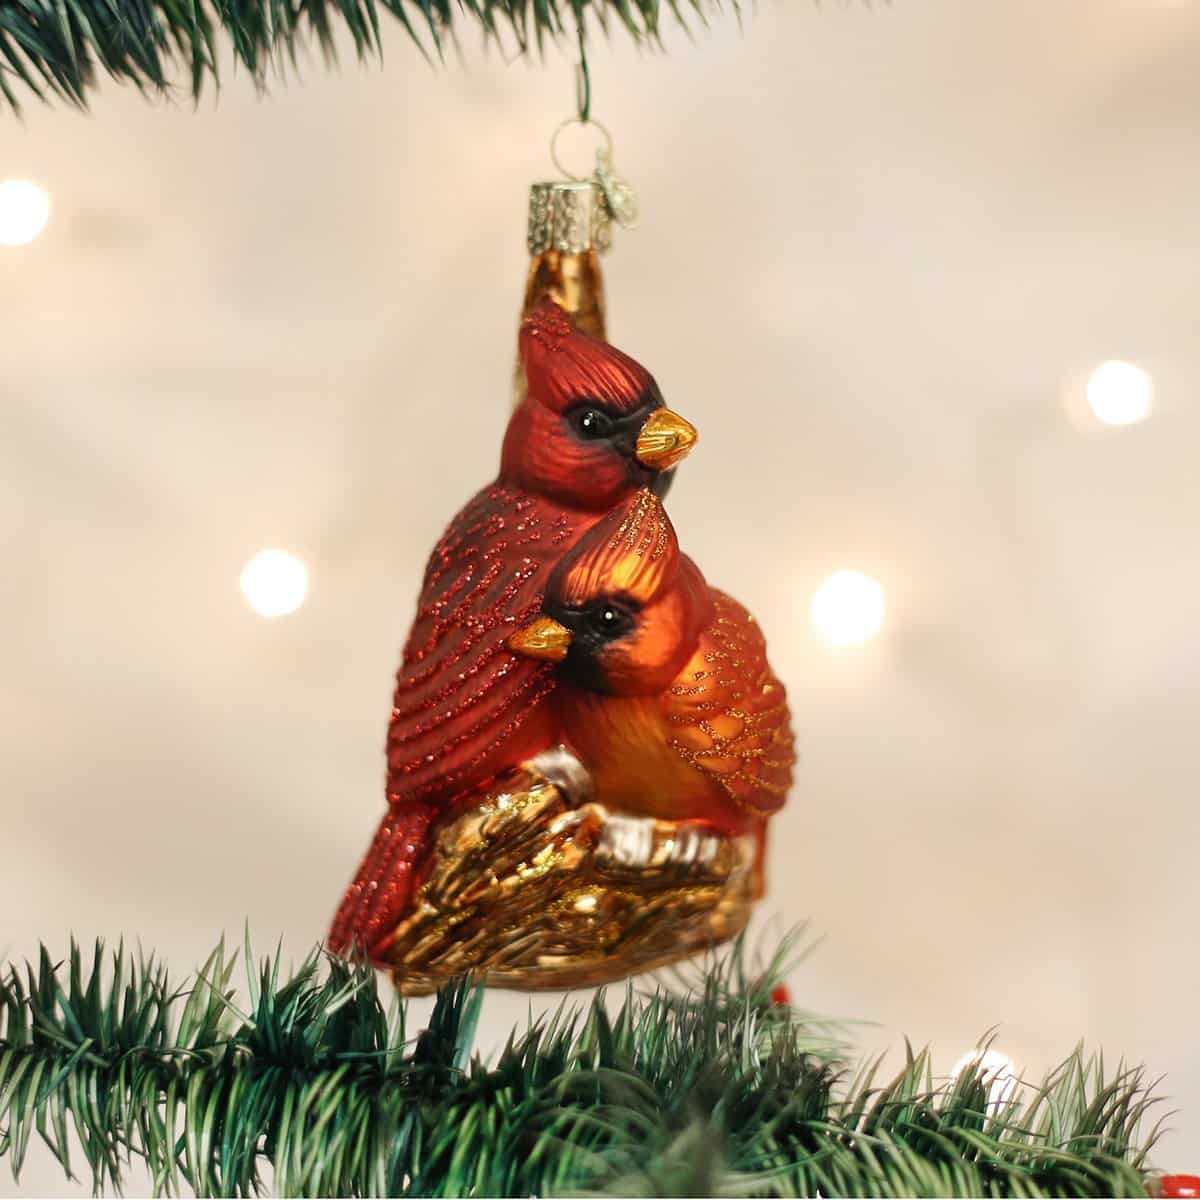 Pair Of Cardinals Christmas Tree Ornament